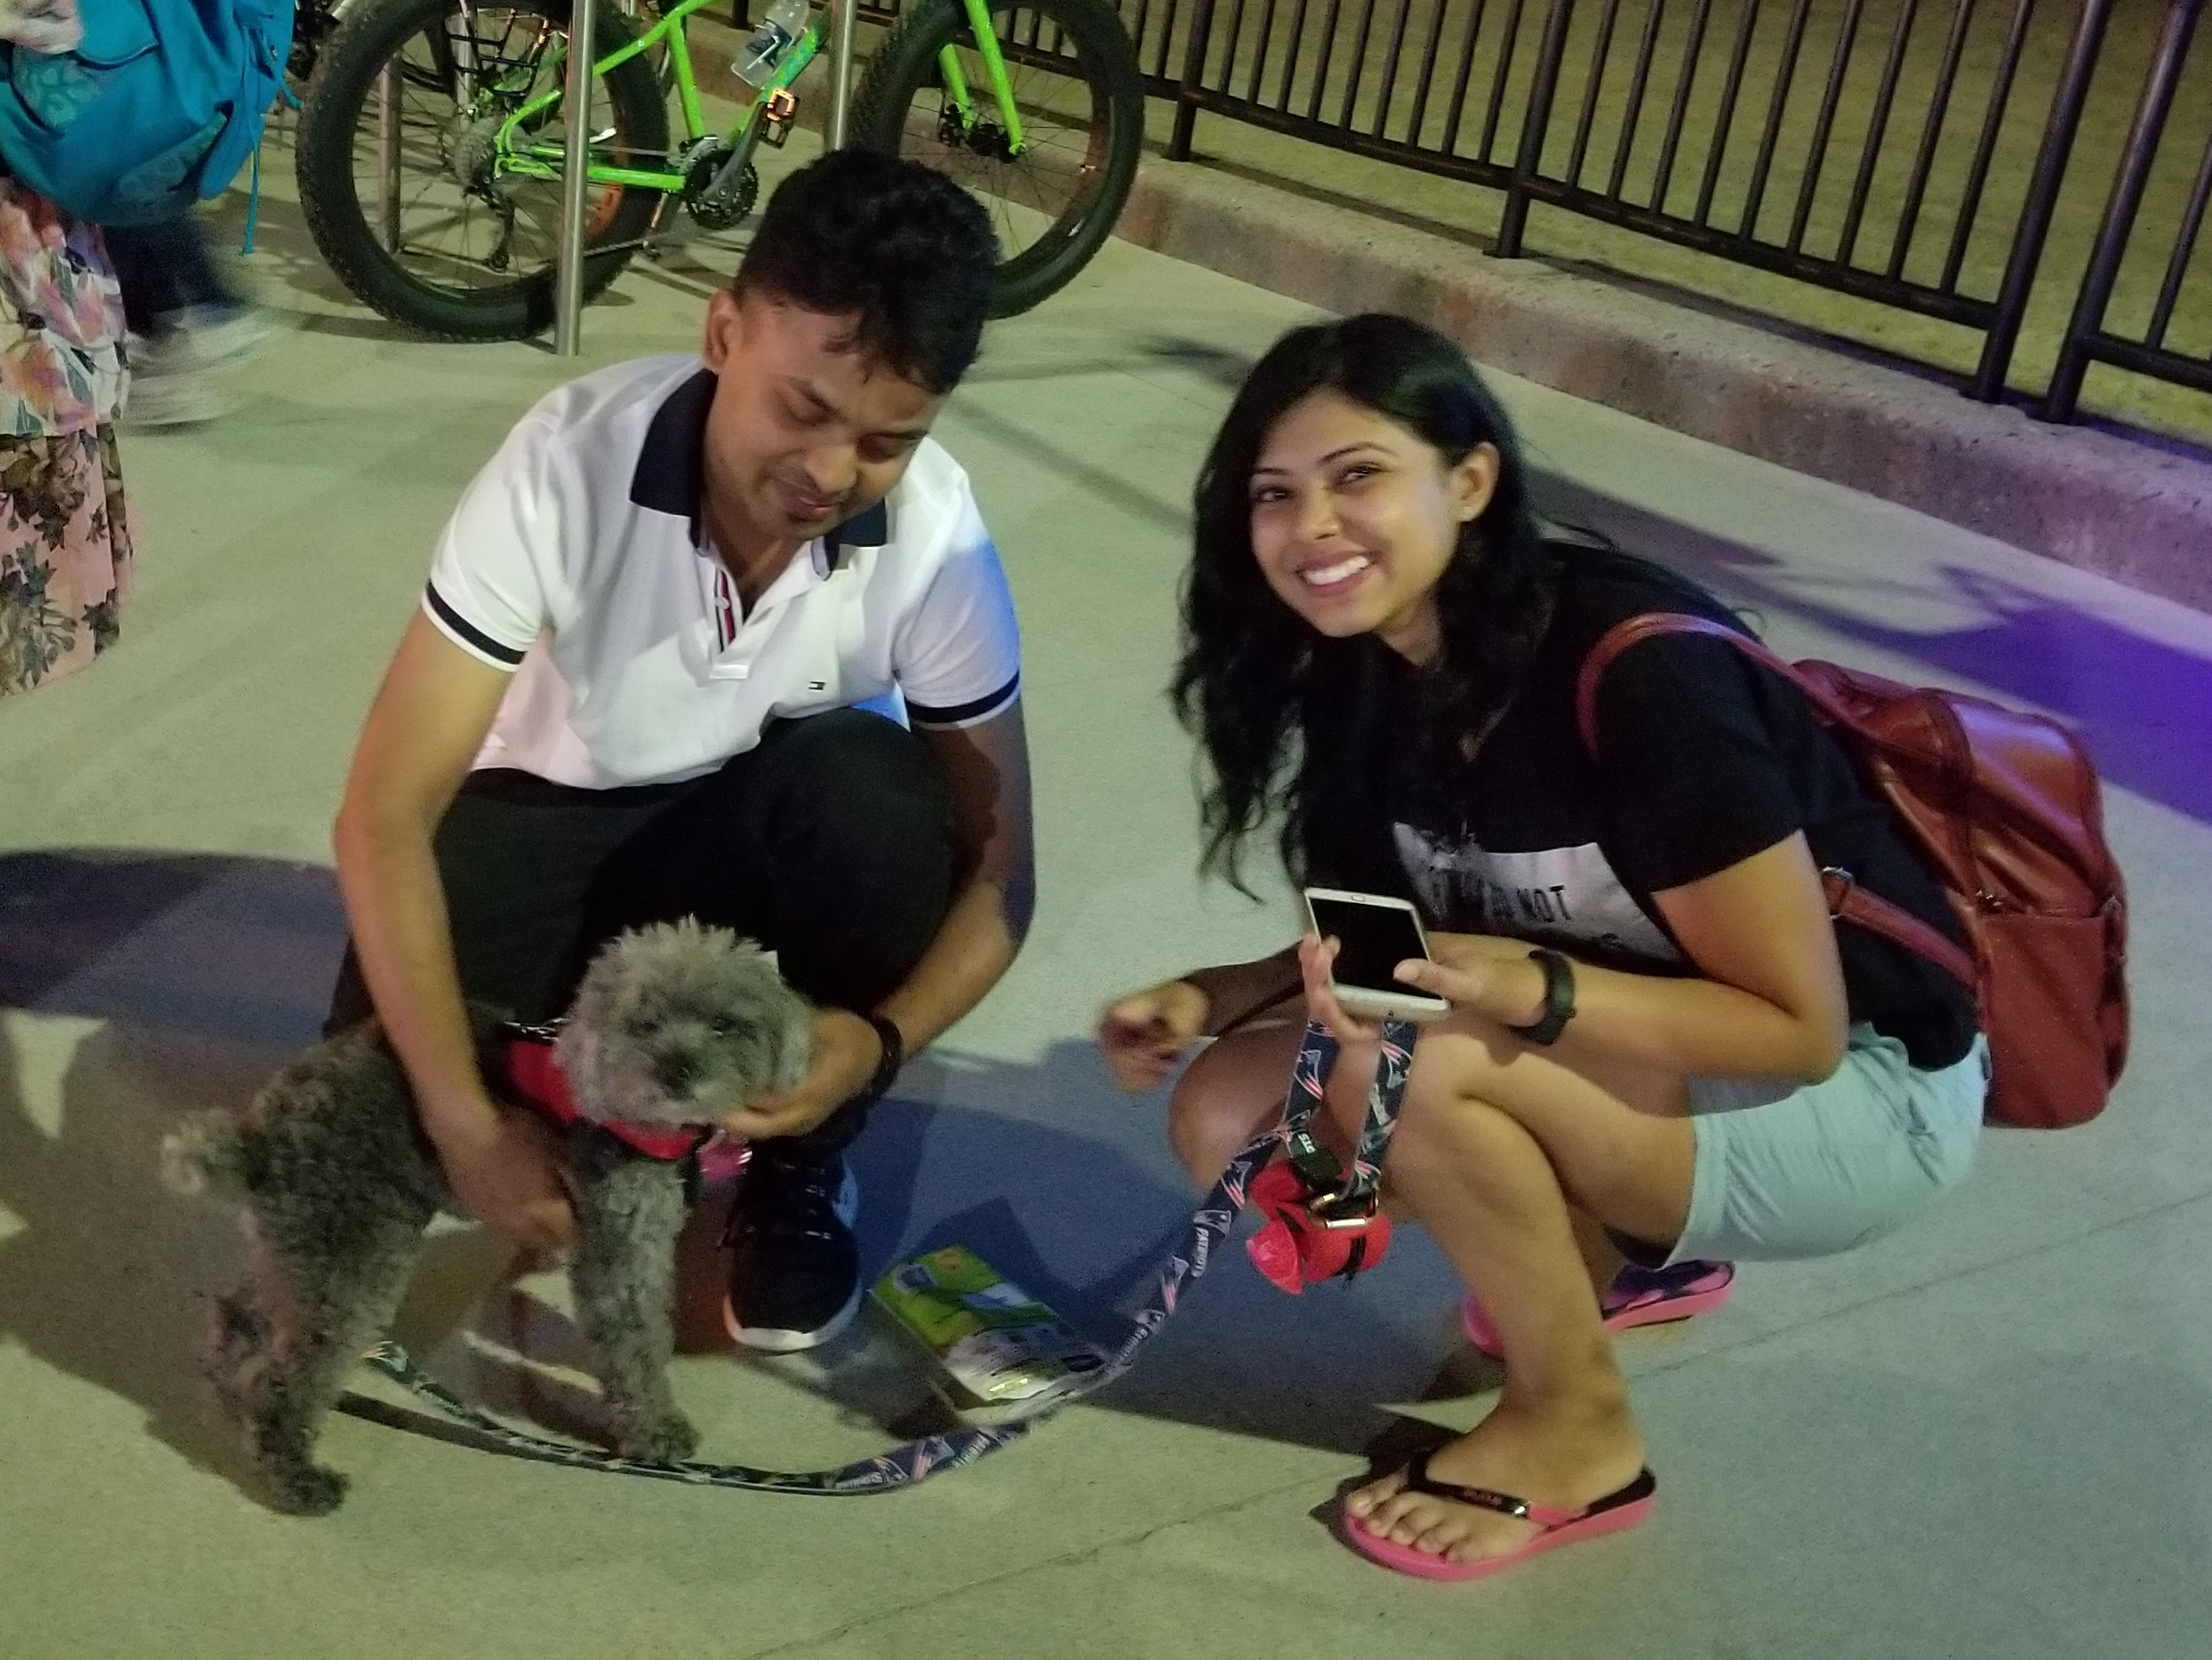 As you can see, they went nuts over Jarvis, and kept petting him and having their photos taken with him. :)